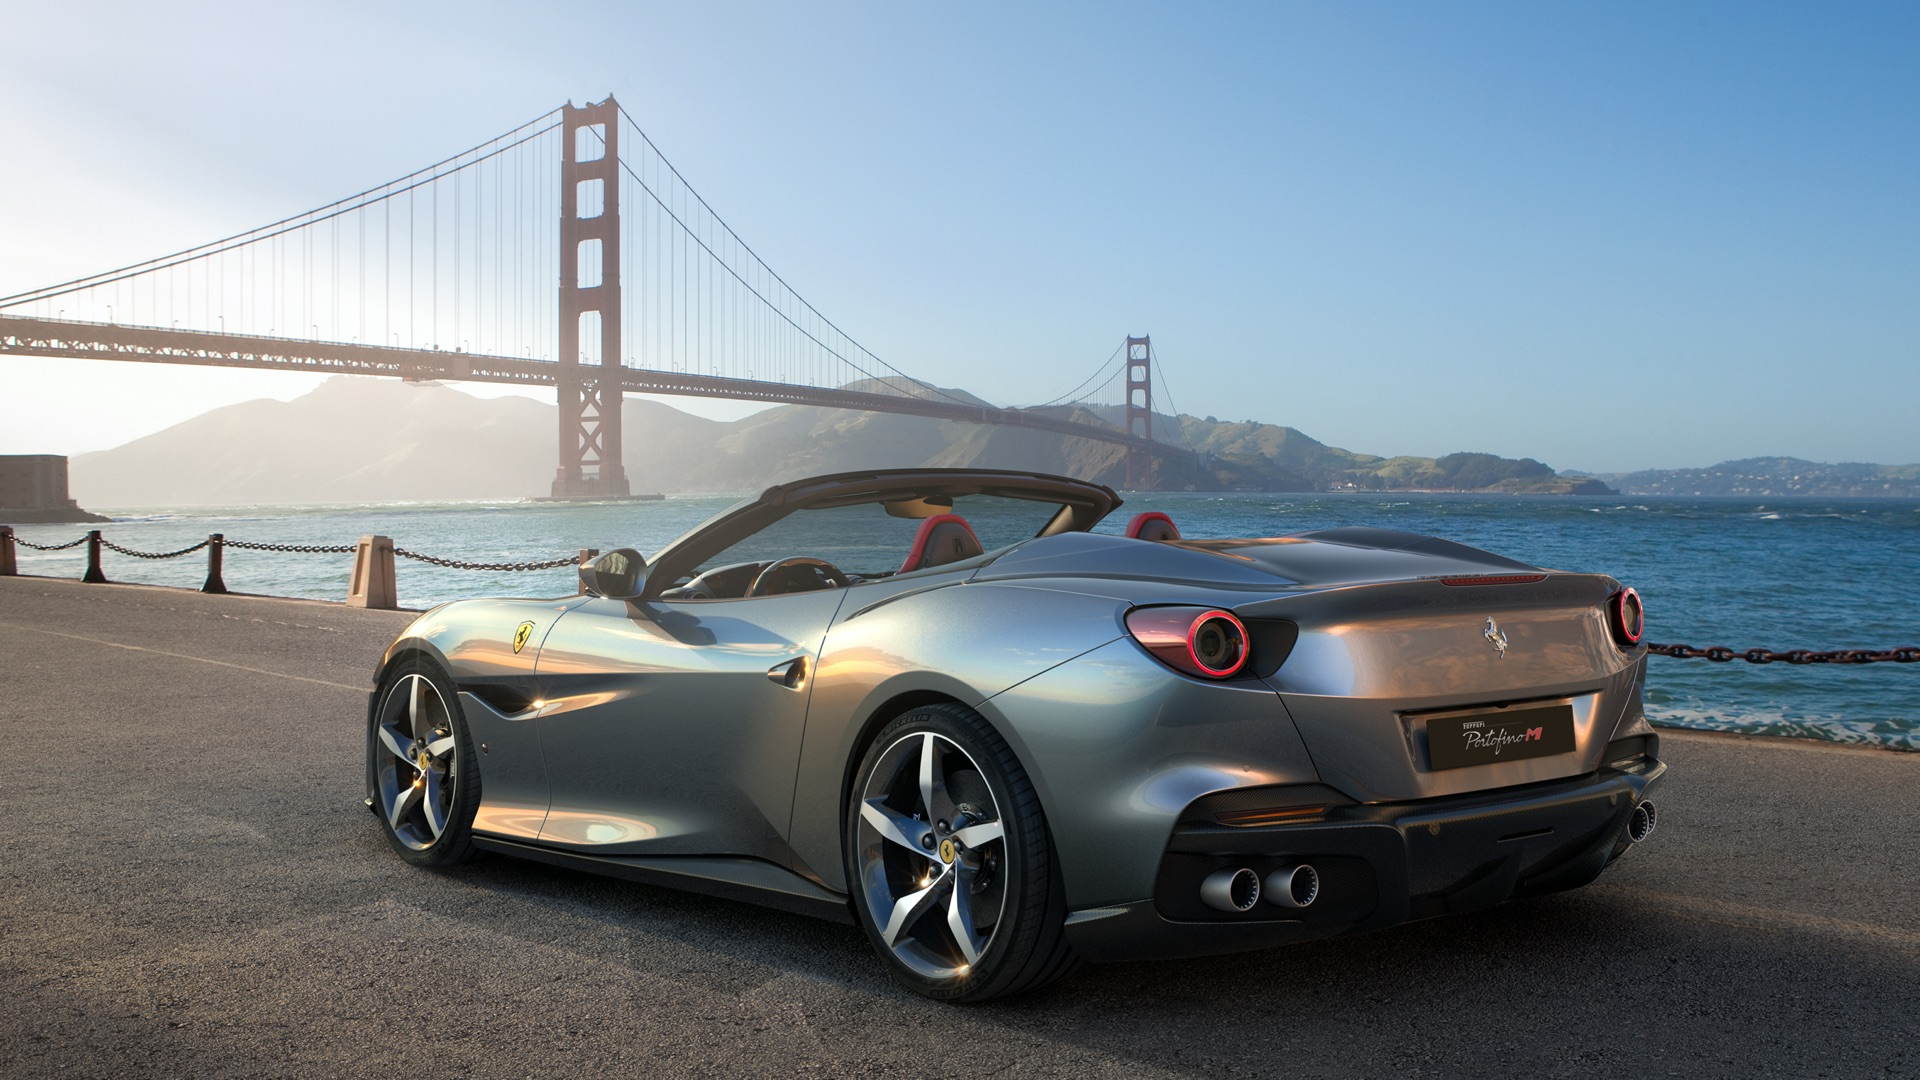 Ferrari Portofino M revealed: Entry-level convertible gains power boost